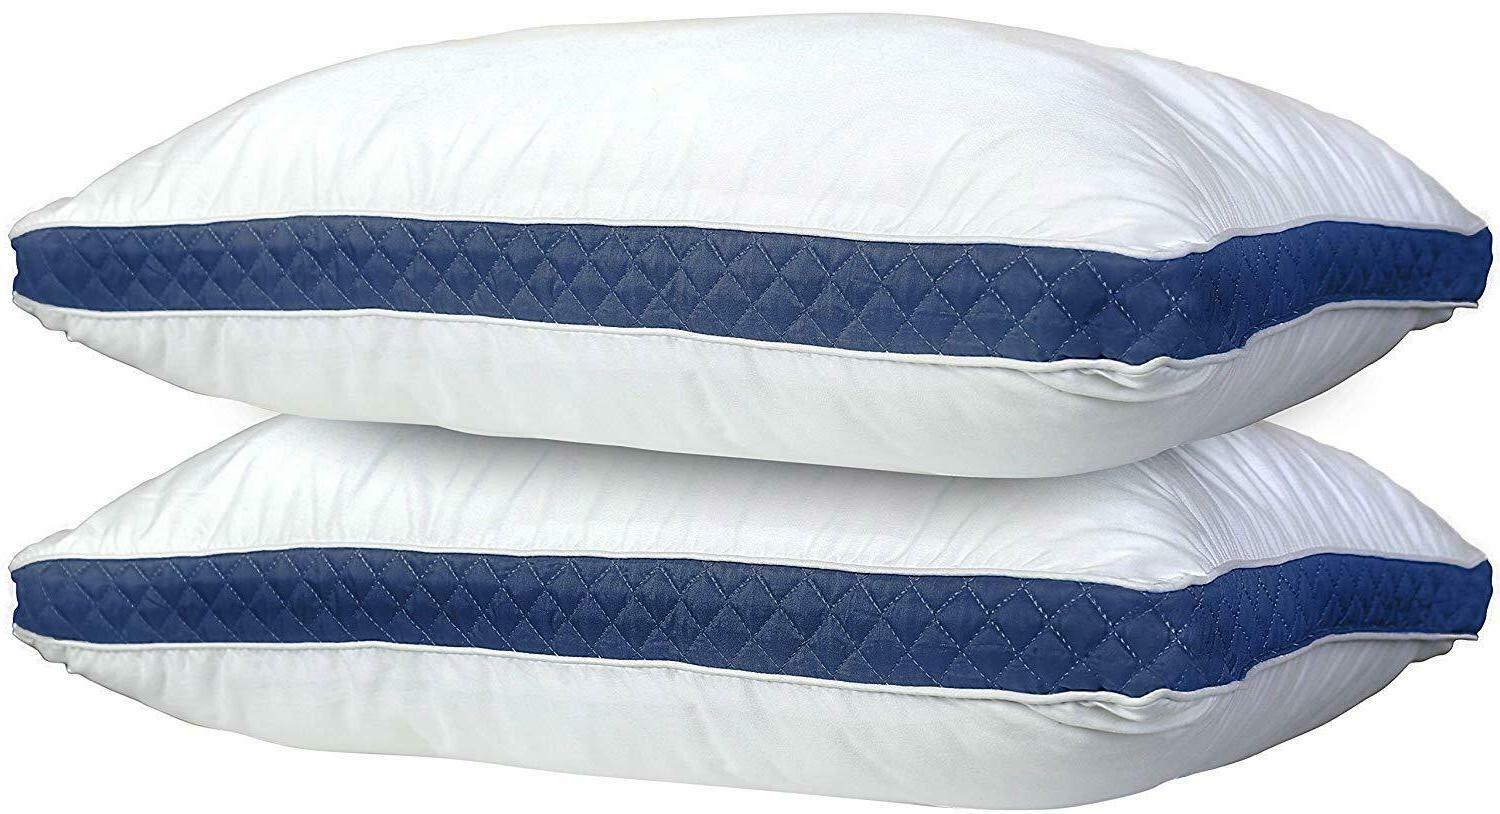 Hotel Collection Bed Pillows Pack of 2 Firm Gusseted Pillow